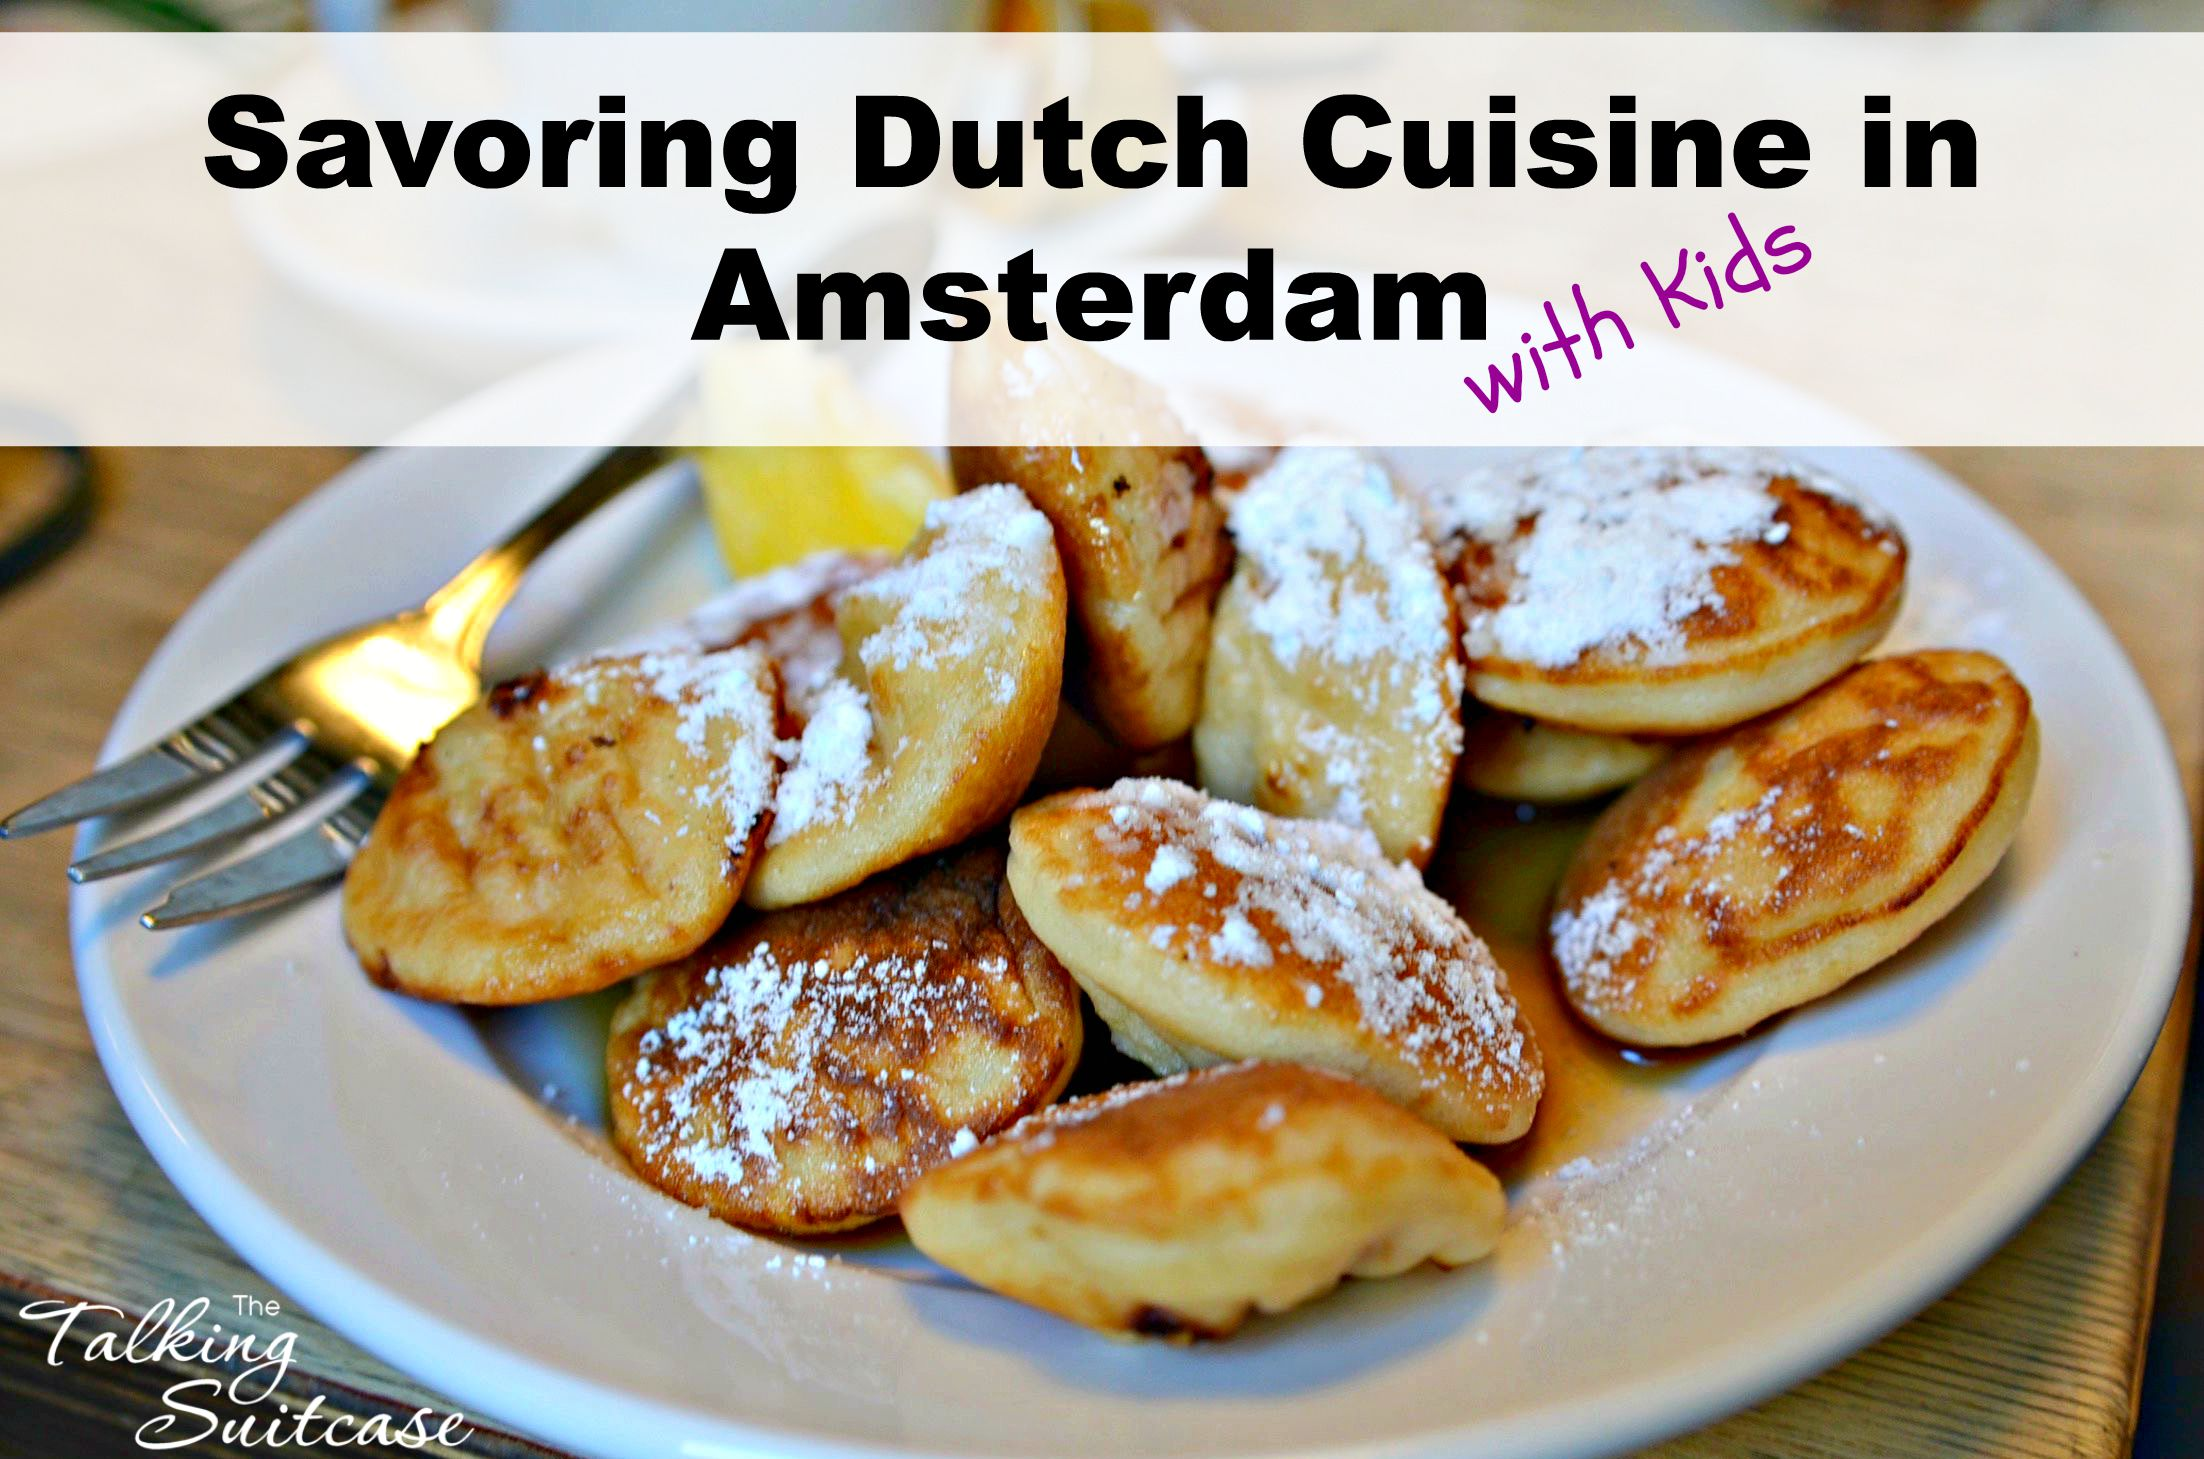 Cuisine in amsterdam 28 images introducing our newest for Decoller un miroir